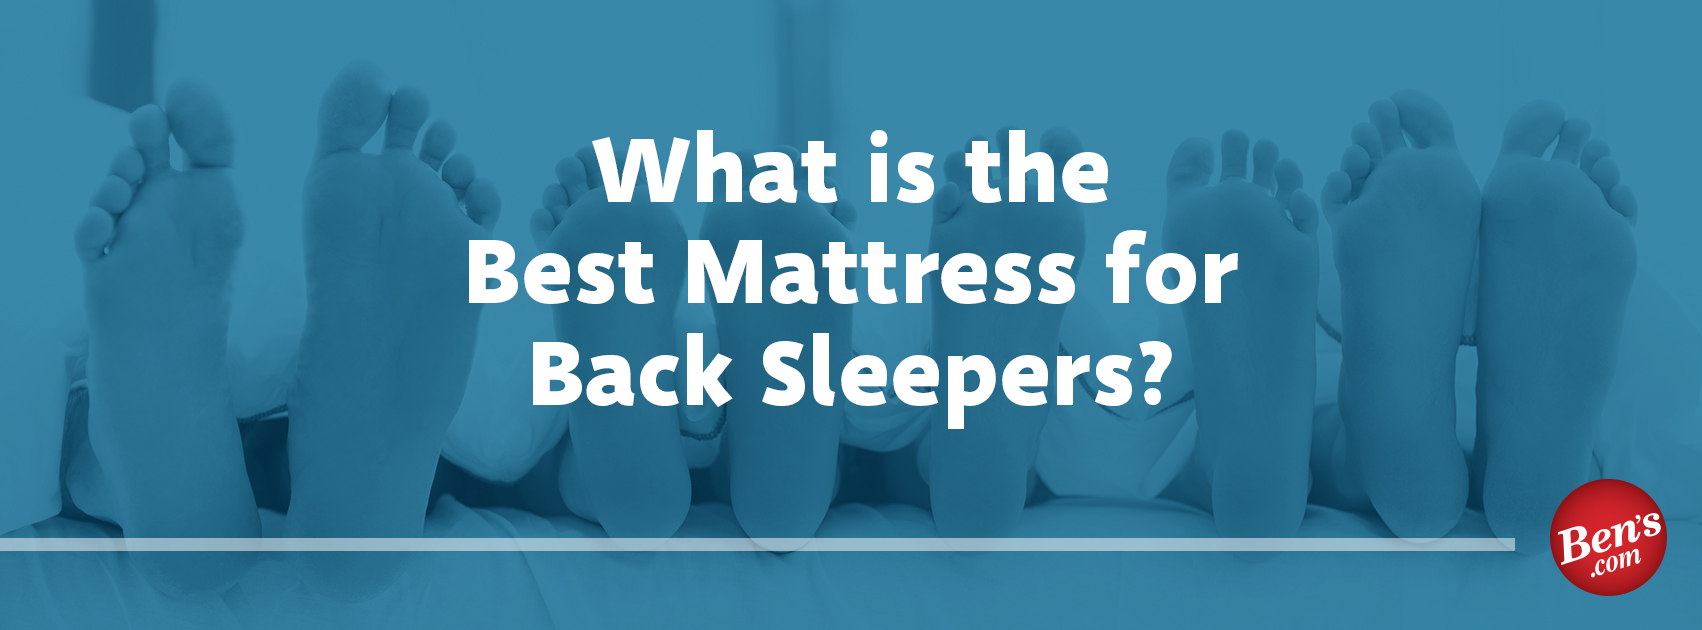 December (2) _ What is the Best Mattress for Back Sleepers?